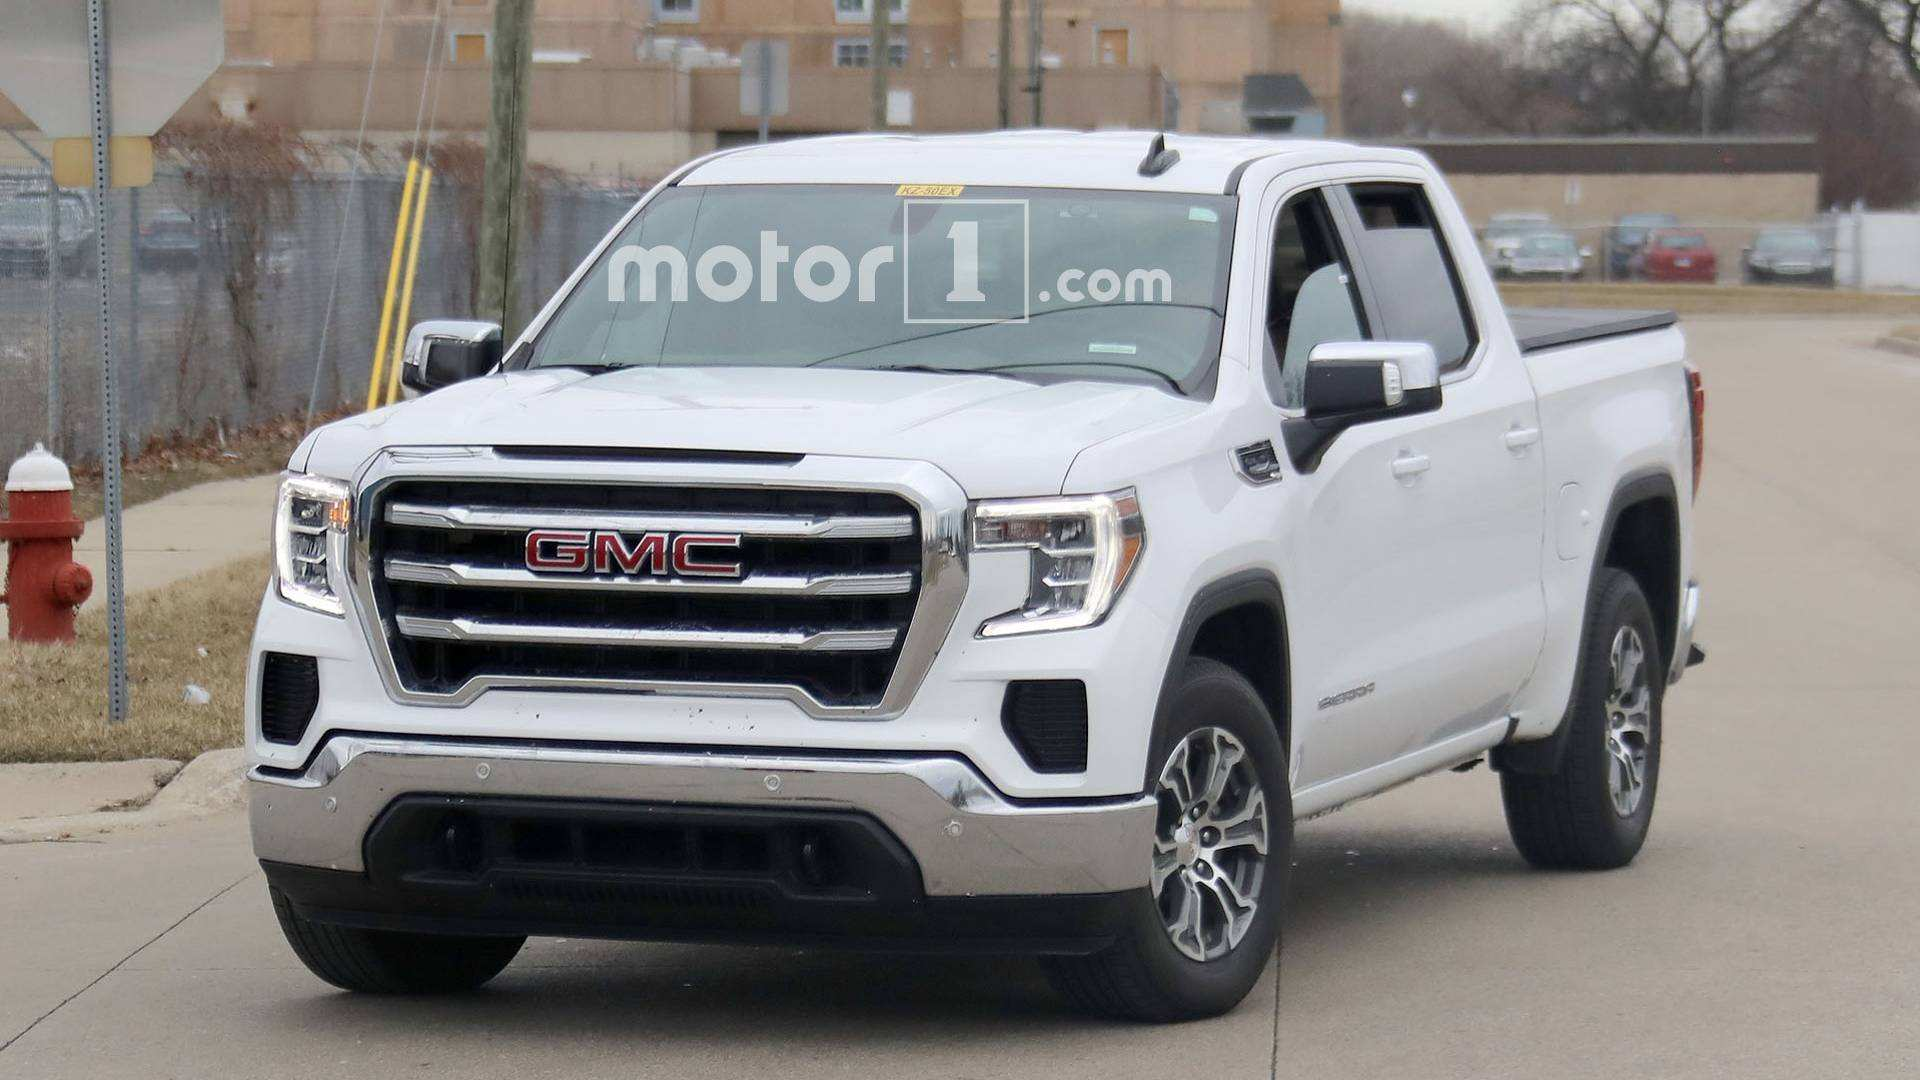 24 Best Review 2019 Gmc 1500 Release Date Wallpaper for 2019 Gmc 1500 Release Date